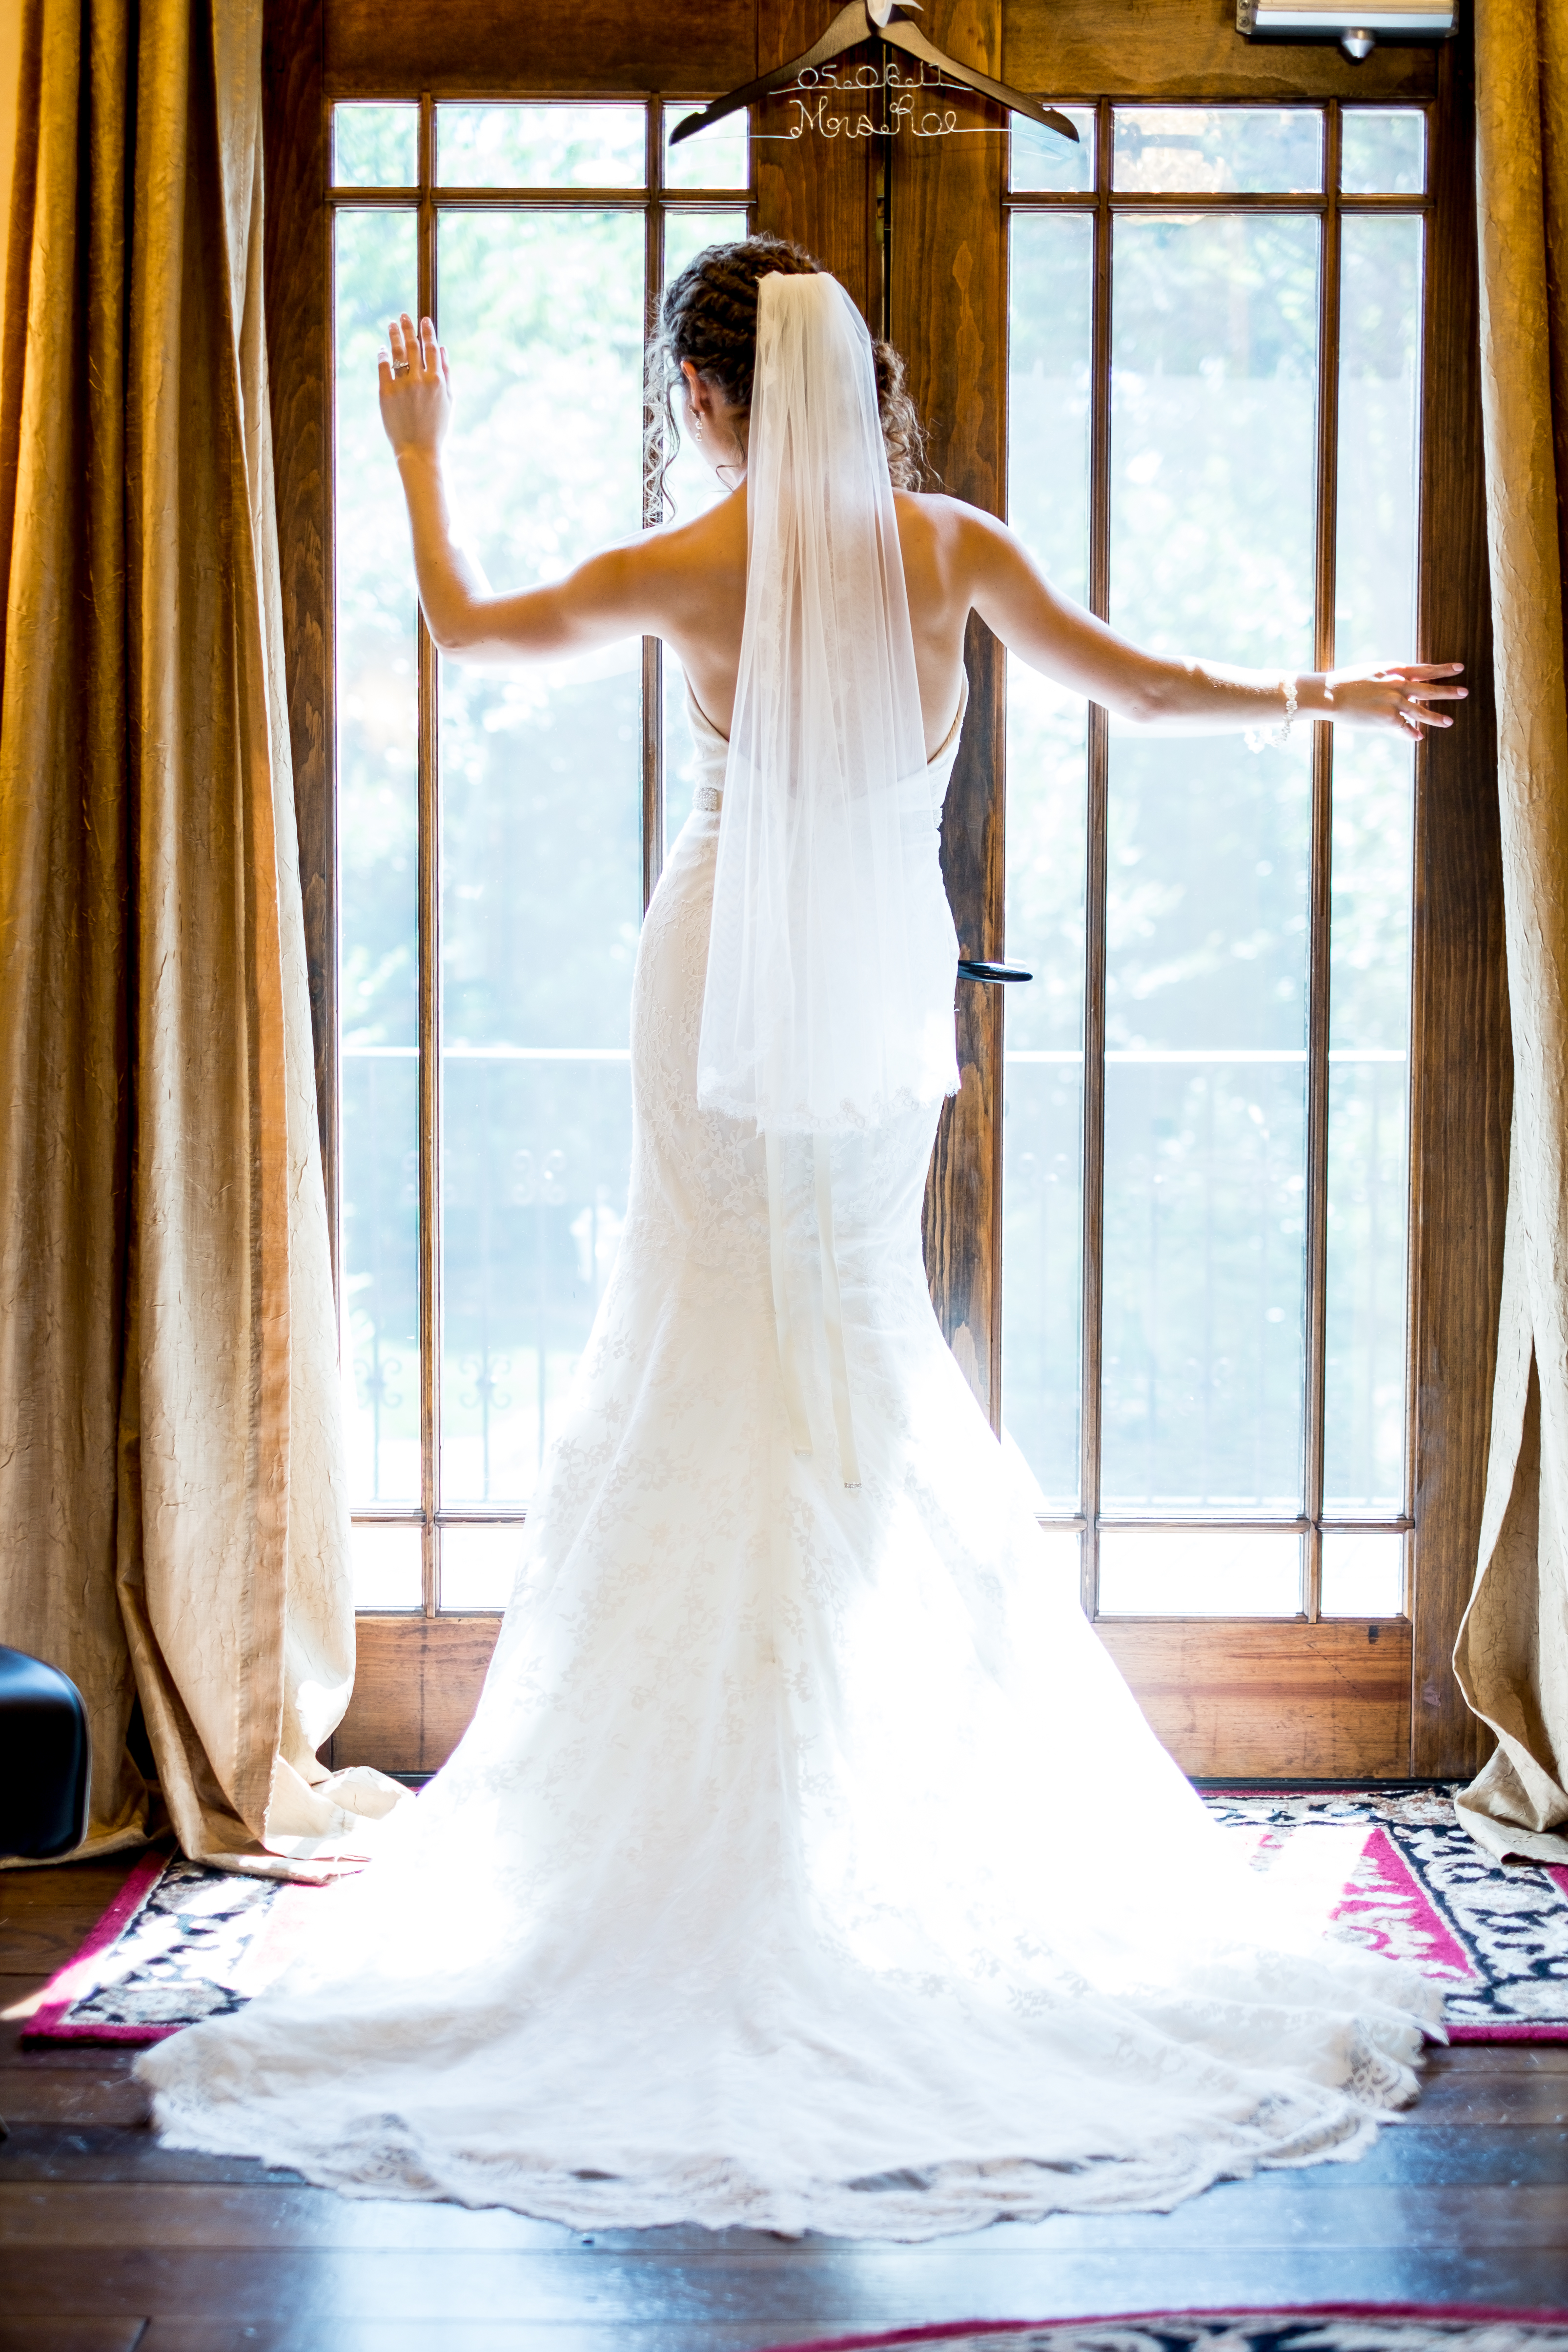 A bride standing in front of a window. Photo taken by Pait Photography, at a wedding at Barclay Villa, in Angier, NC.